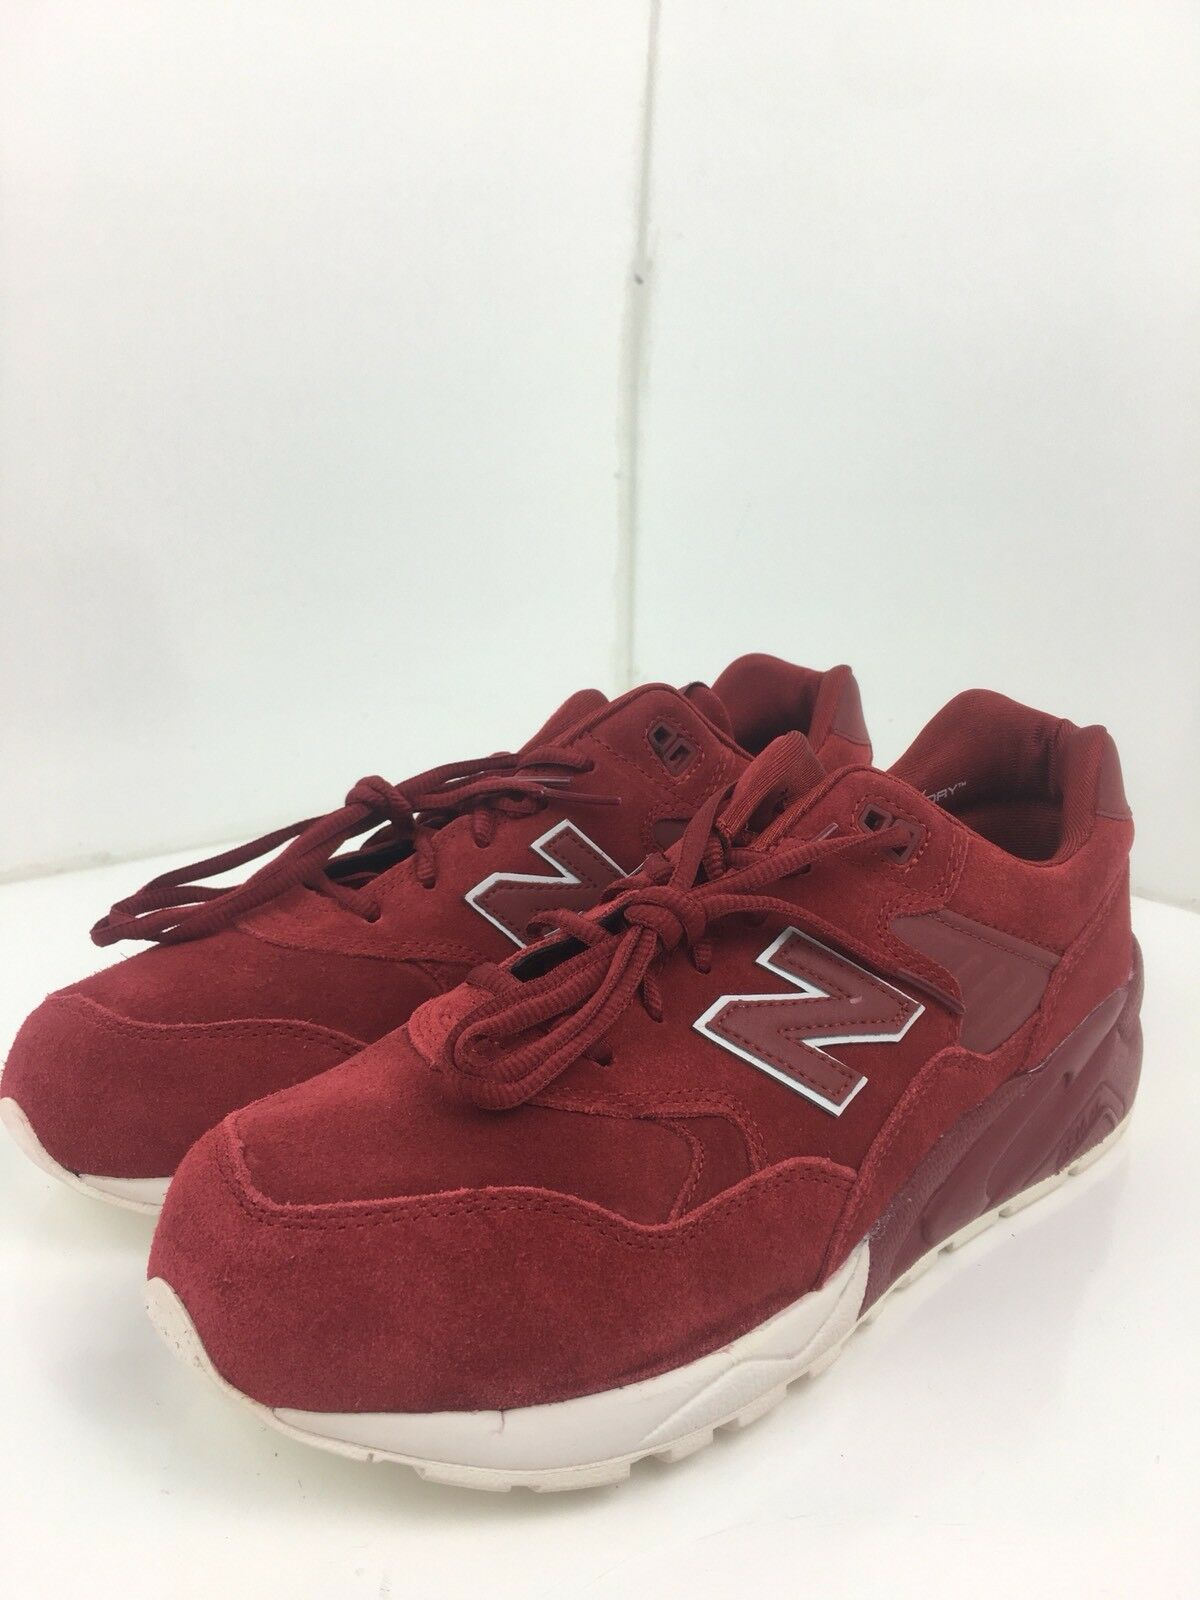 New Balance MRT580BR Lifestyle Tonal Pack Red White Suede Lace Up Shoes Sz 9.5